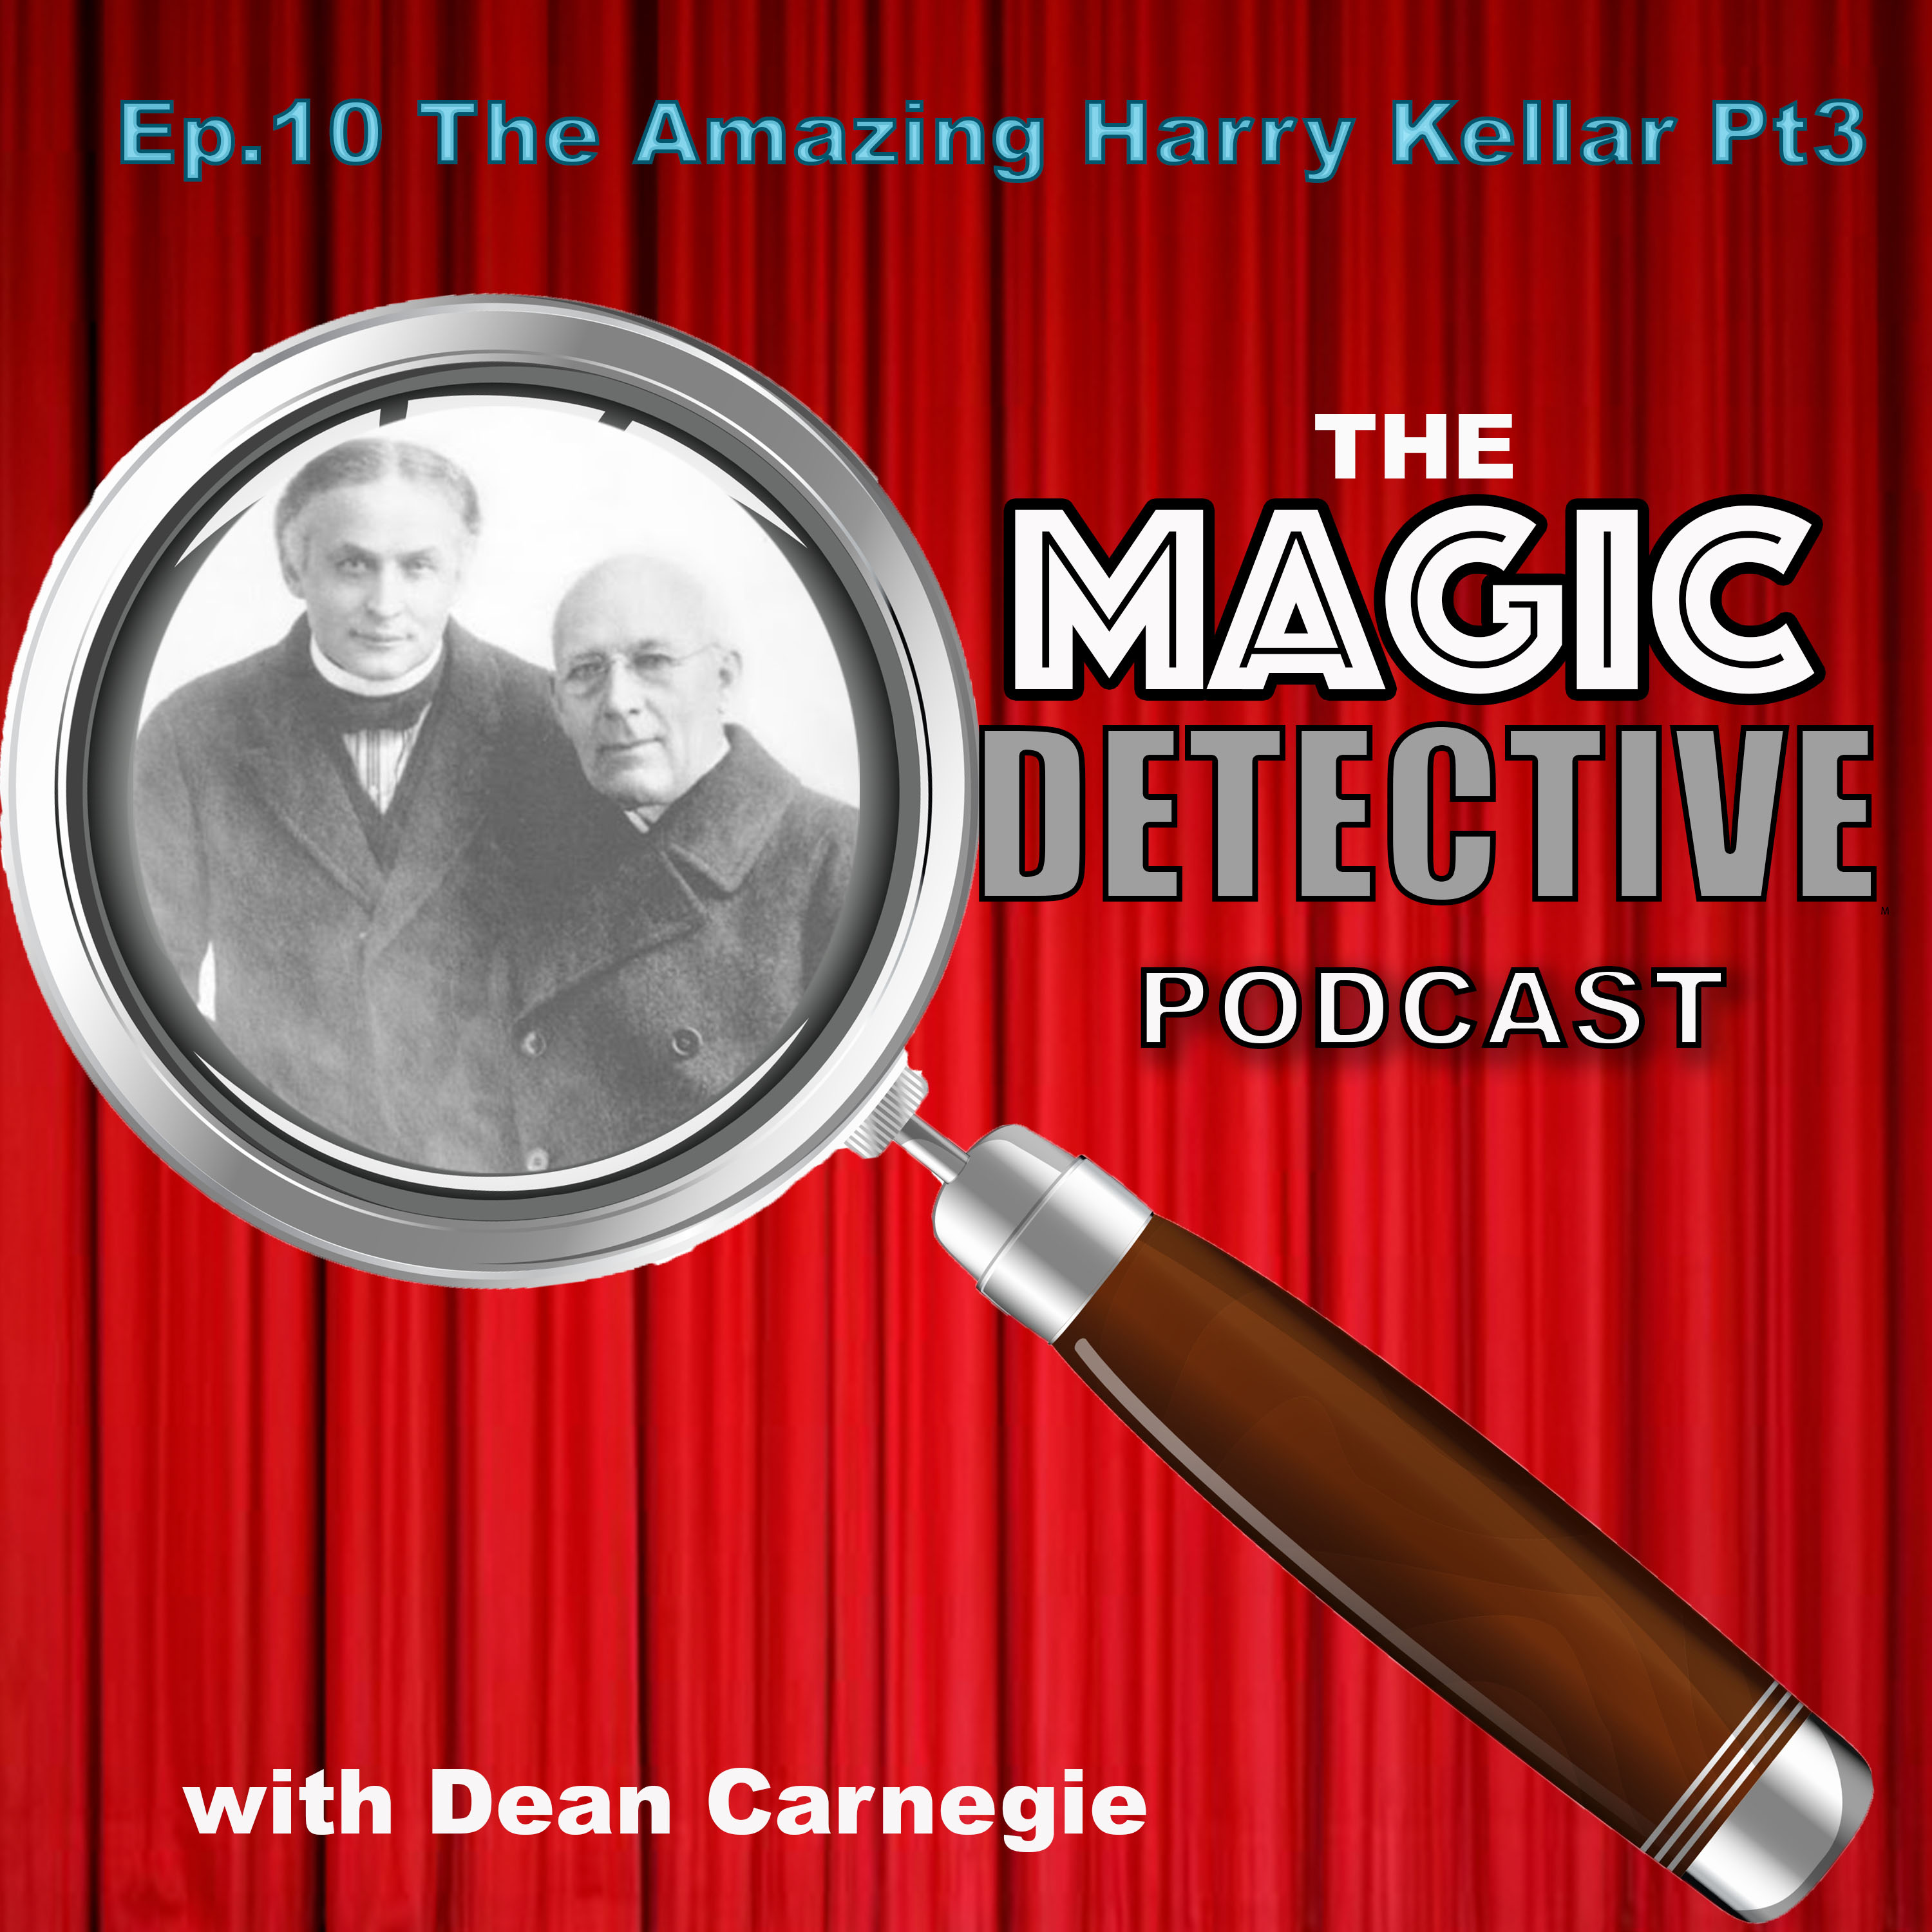 Magic Detective Podcast Episode 10 - Harry Kellar Part 3